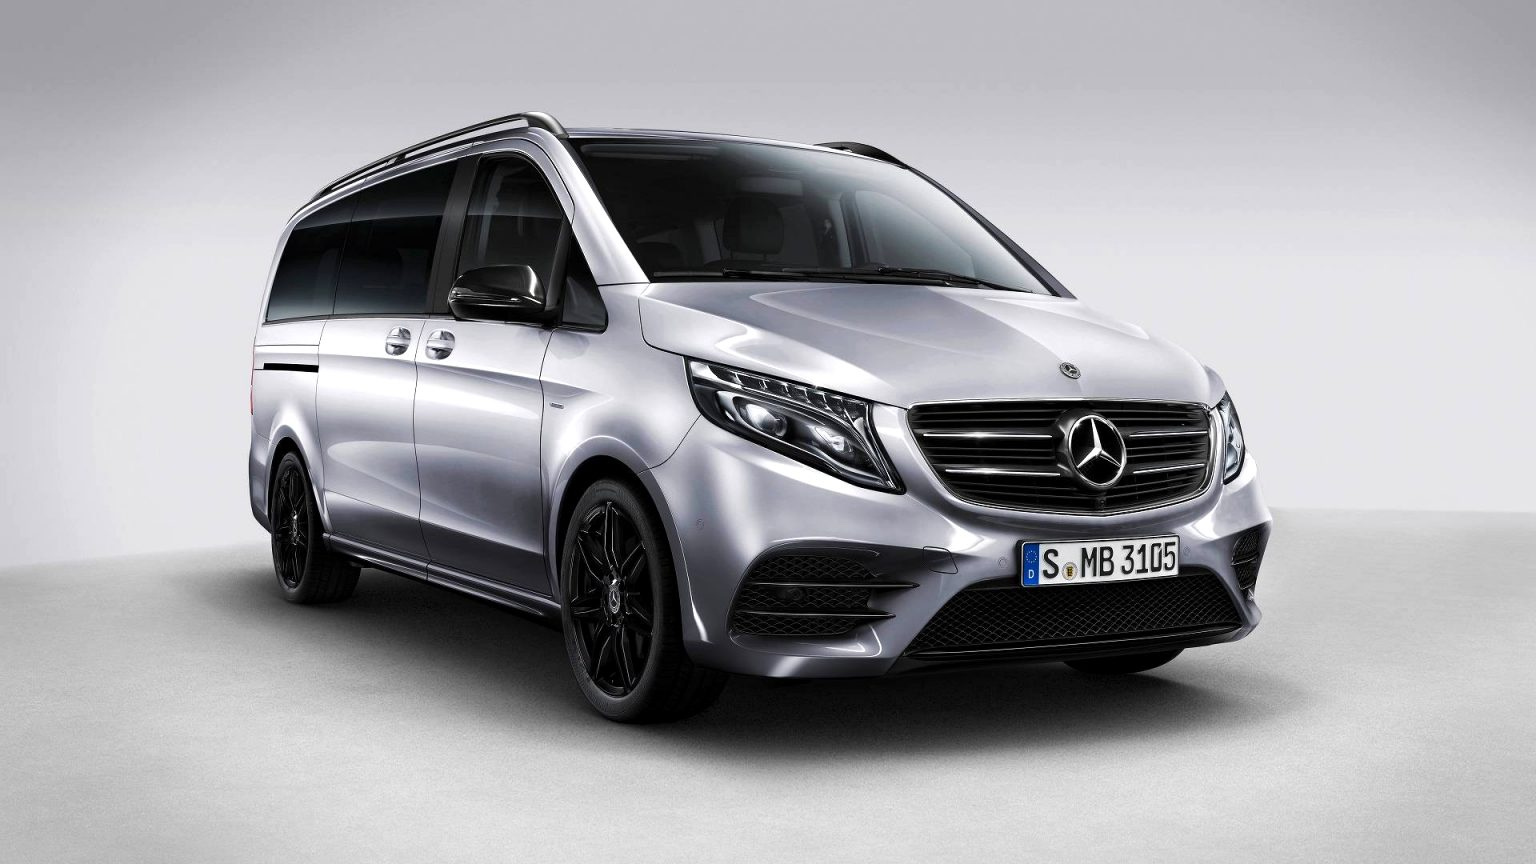 2021 mercedes v class price Images